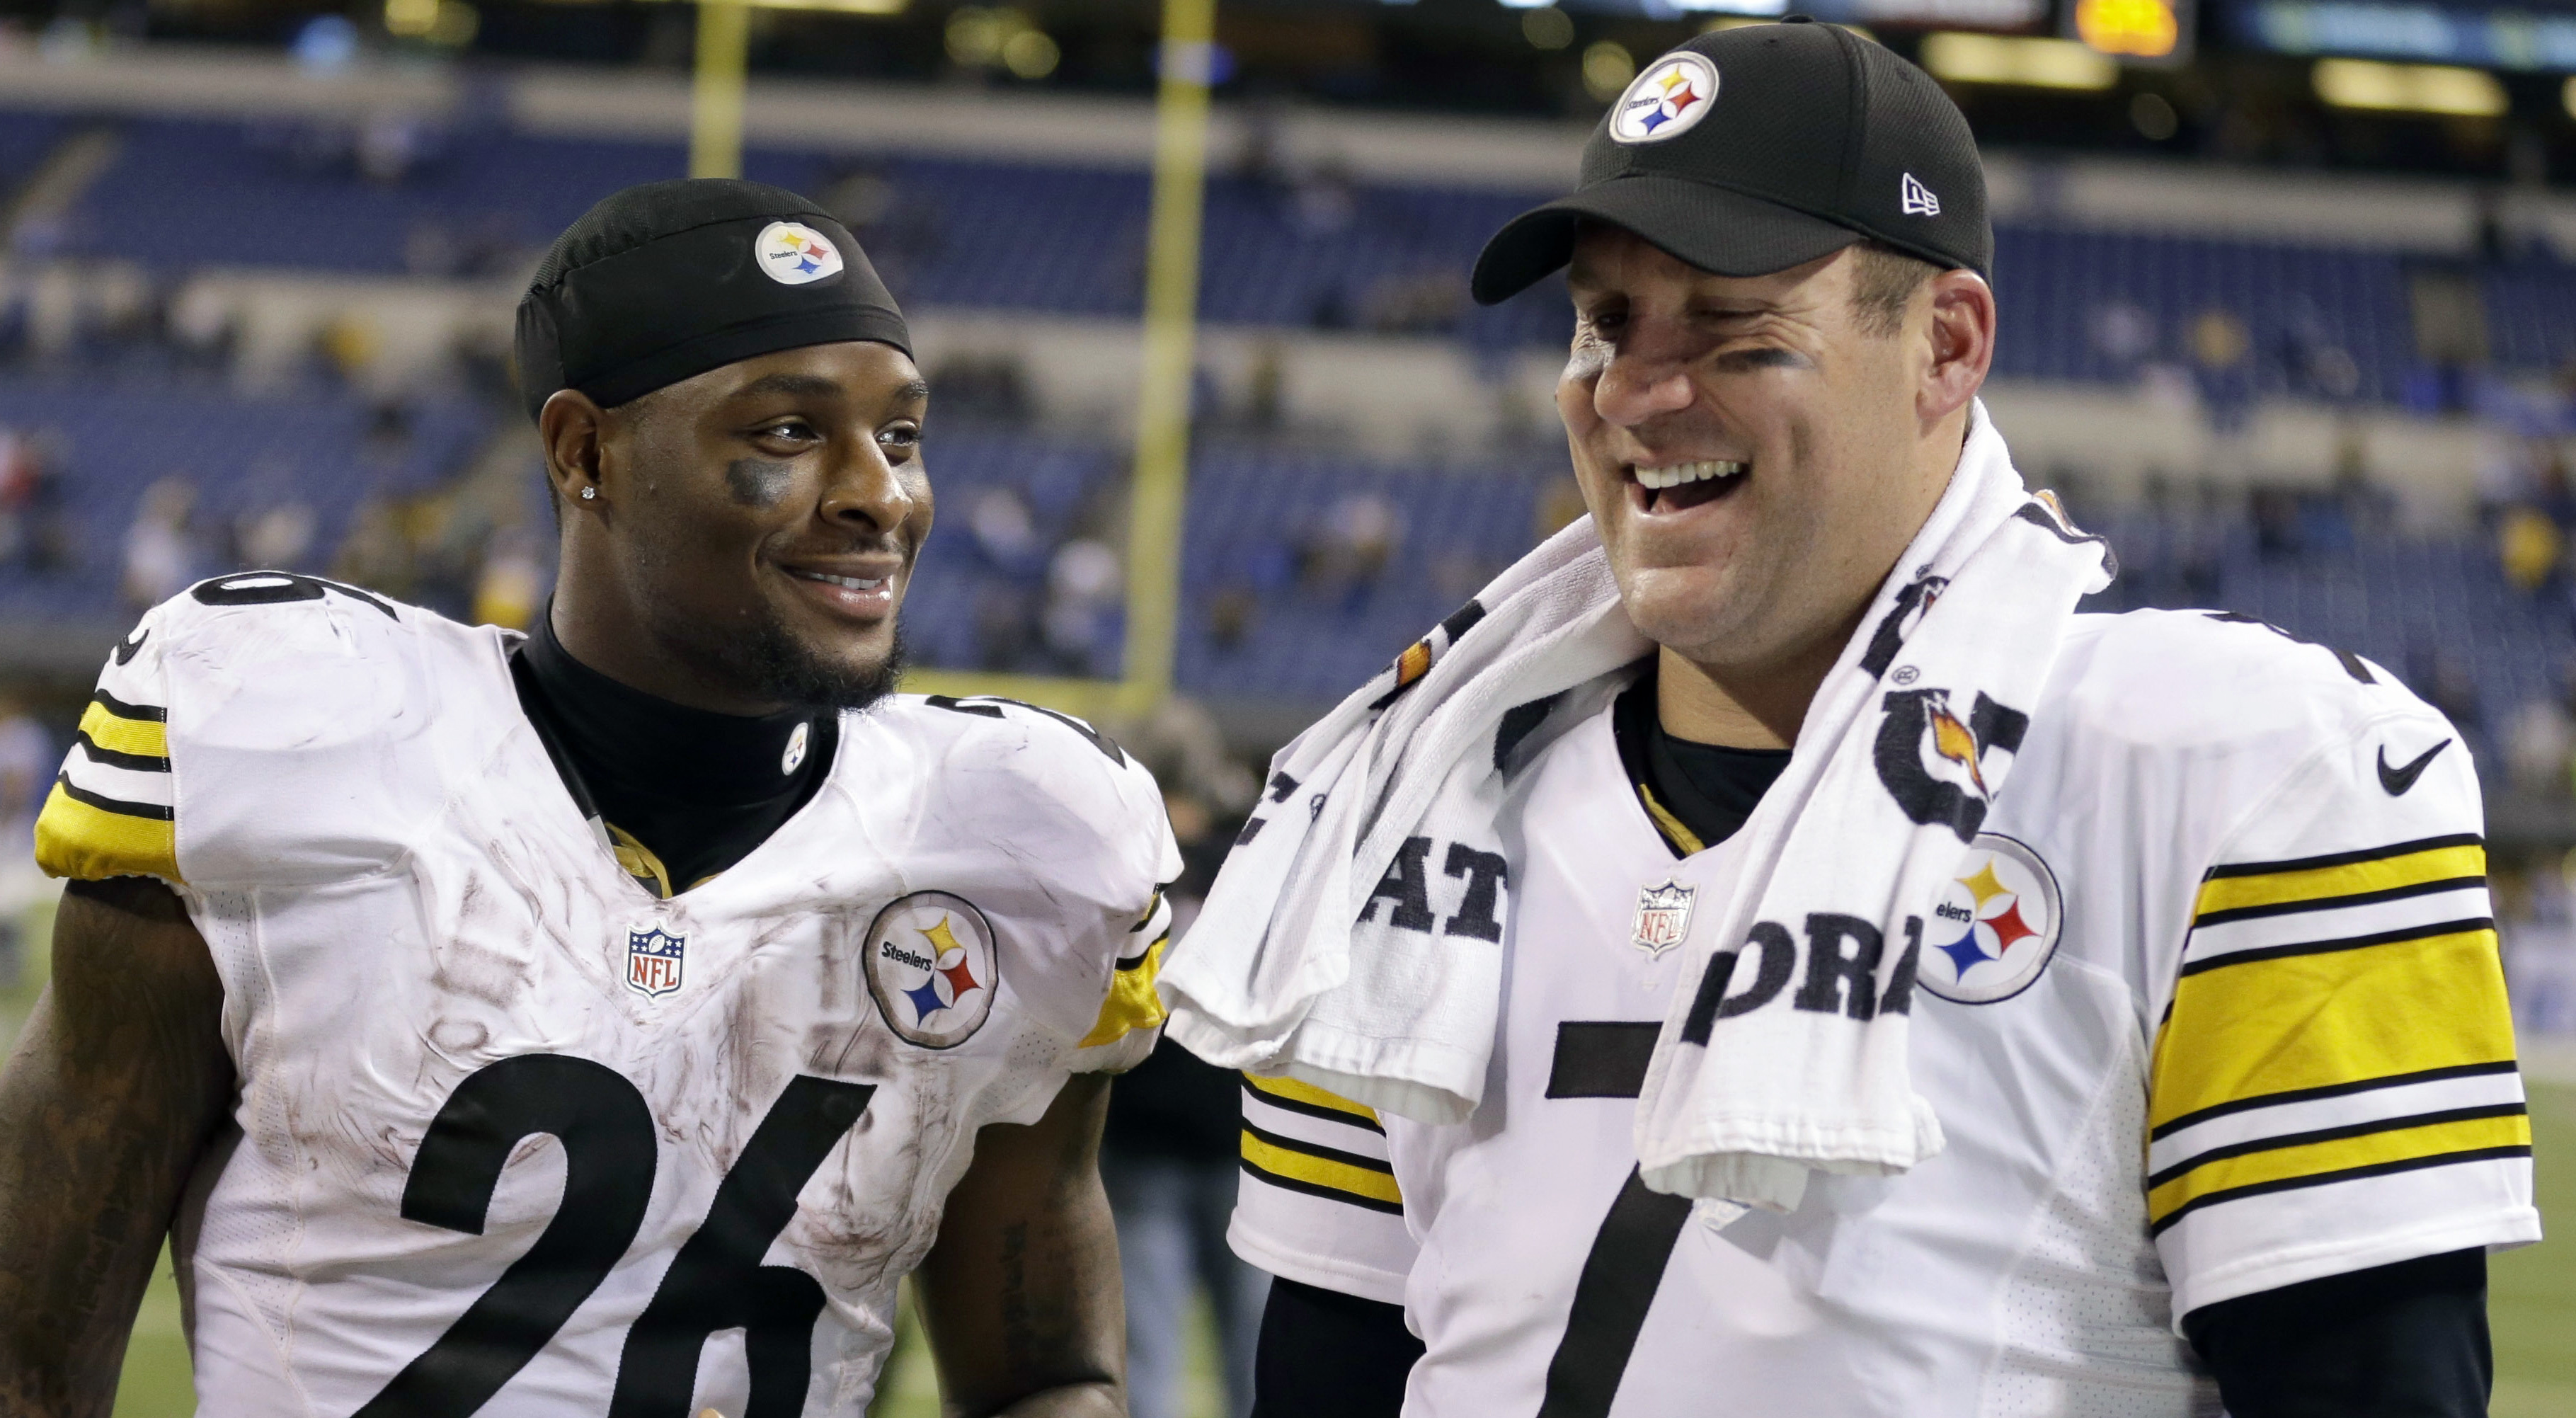 FILE - In this Nov. 24, 2016, file photo, Pittsburgh Steelers quarterback Ben Roethlisberger (7) and running back Le'Veon Bell (26) talk following an NFL football game against the Indianapolis Colts, in Indianapolis. Four years in, Roethlisberger is still